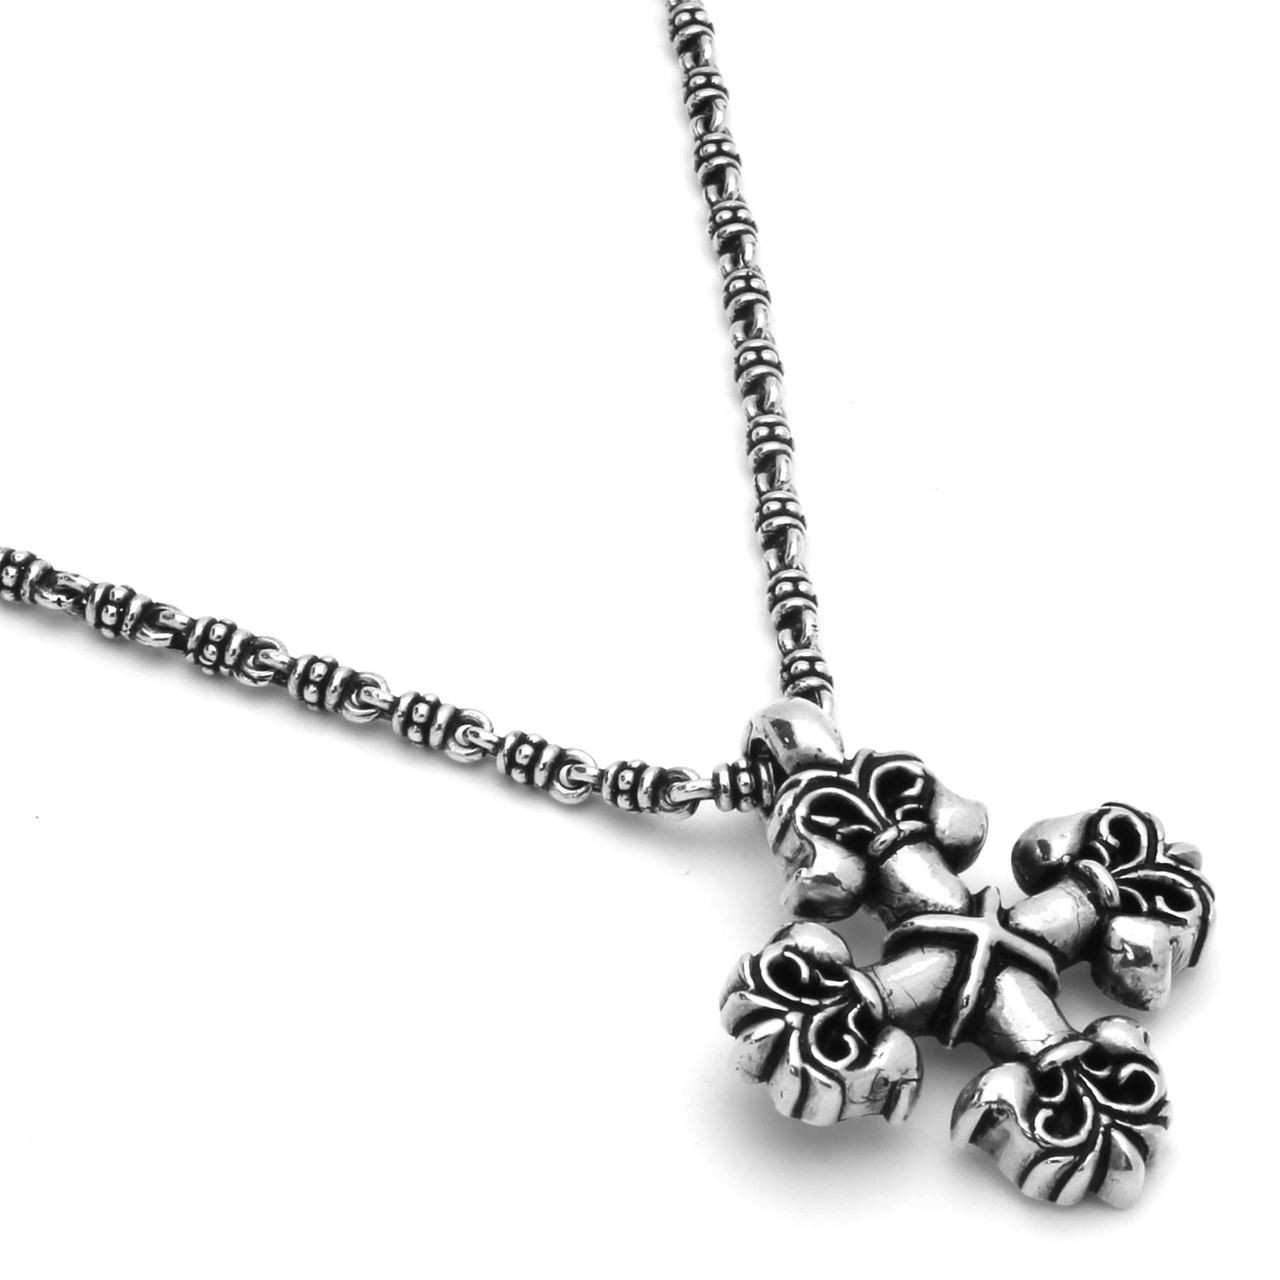 cubic high silver outlet zirconia end fashion jewelry silverworks square cross price factory unisex belk p pendant fashionhighendfactory